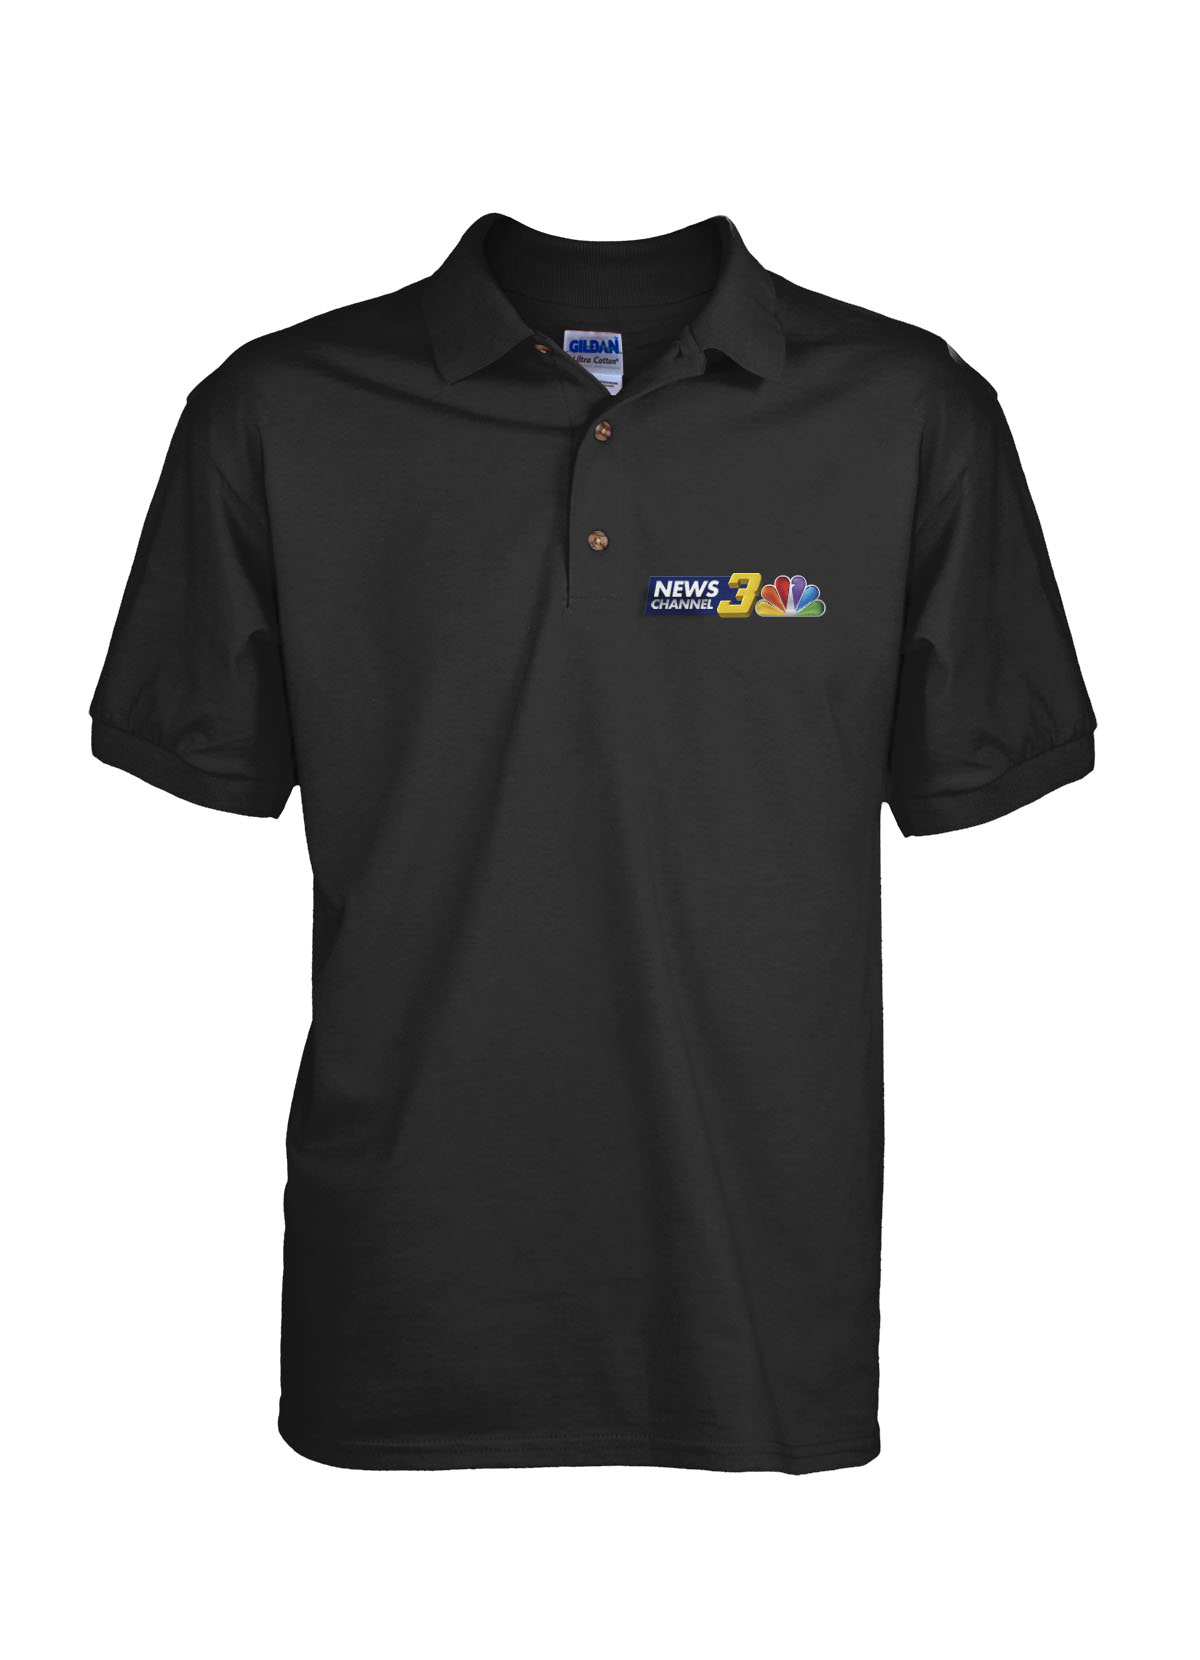 Channel 3 polo front.jpg